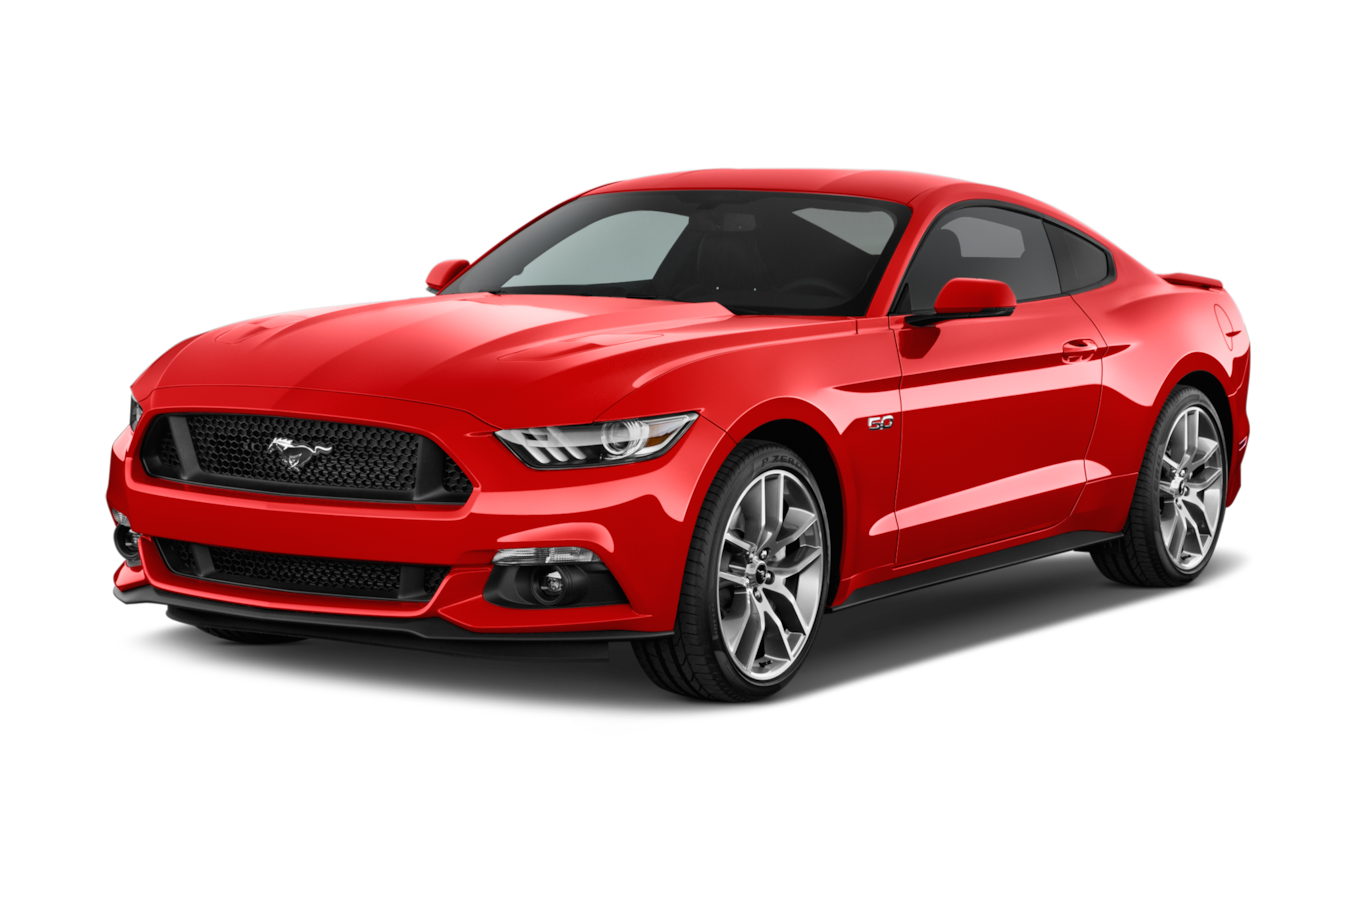 Mustang clipart. Hd transparentpng